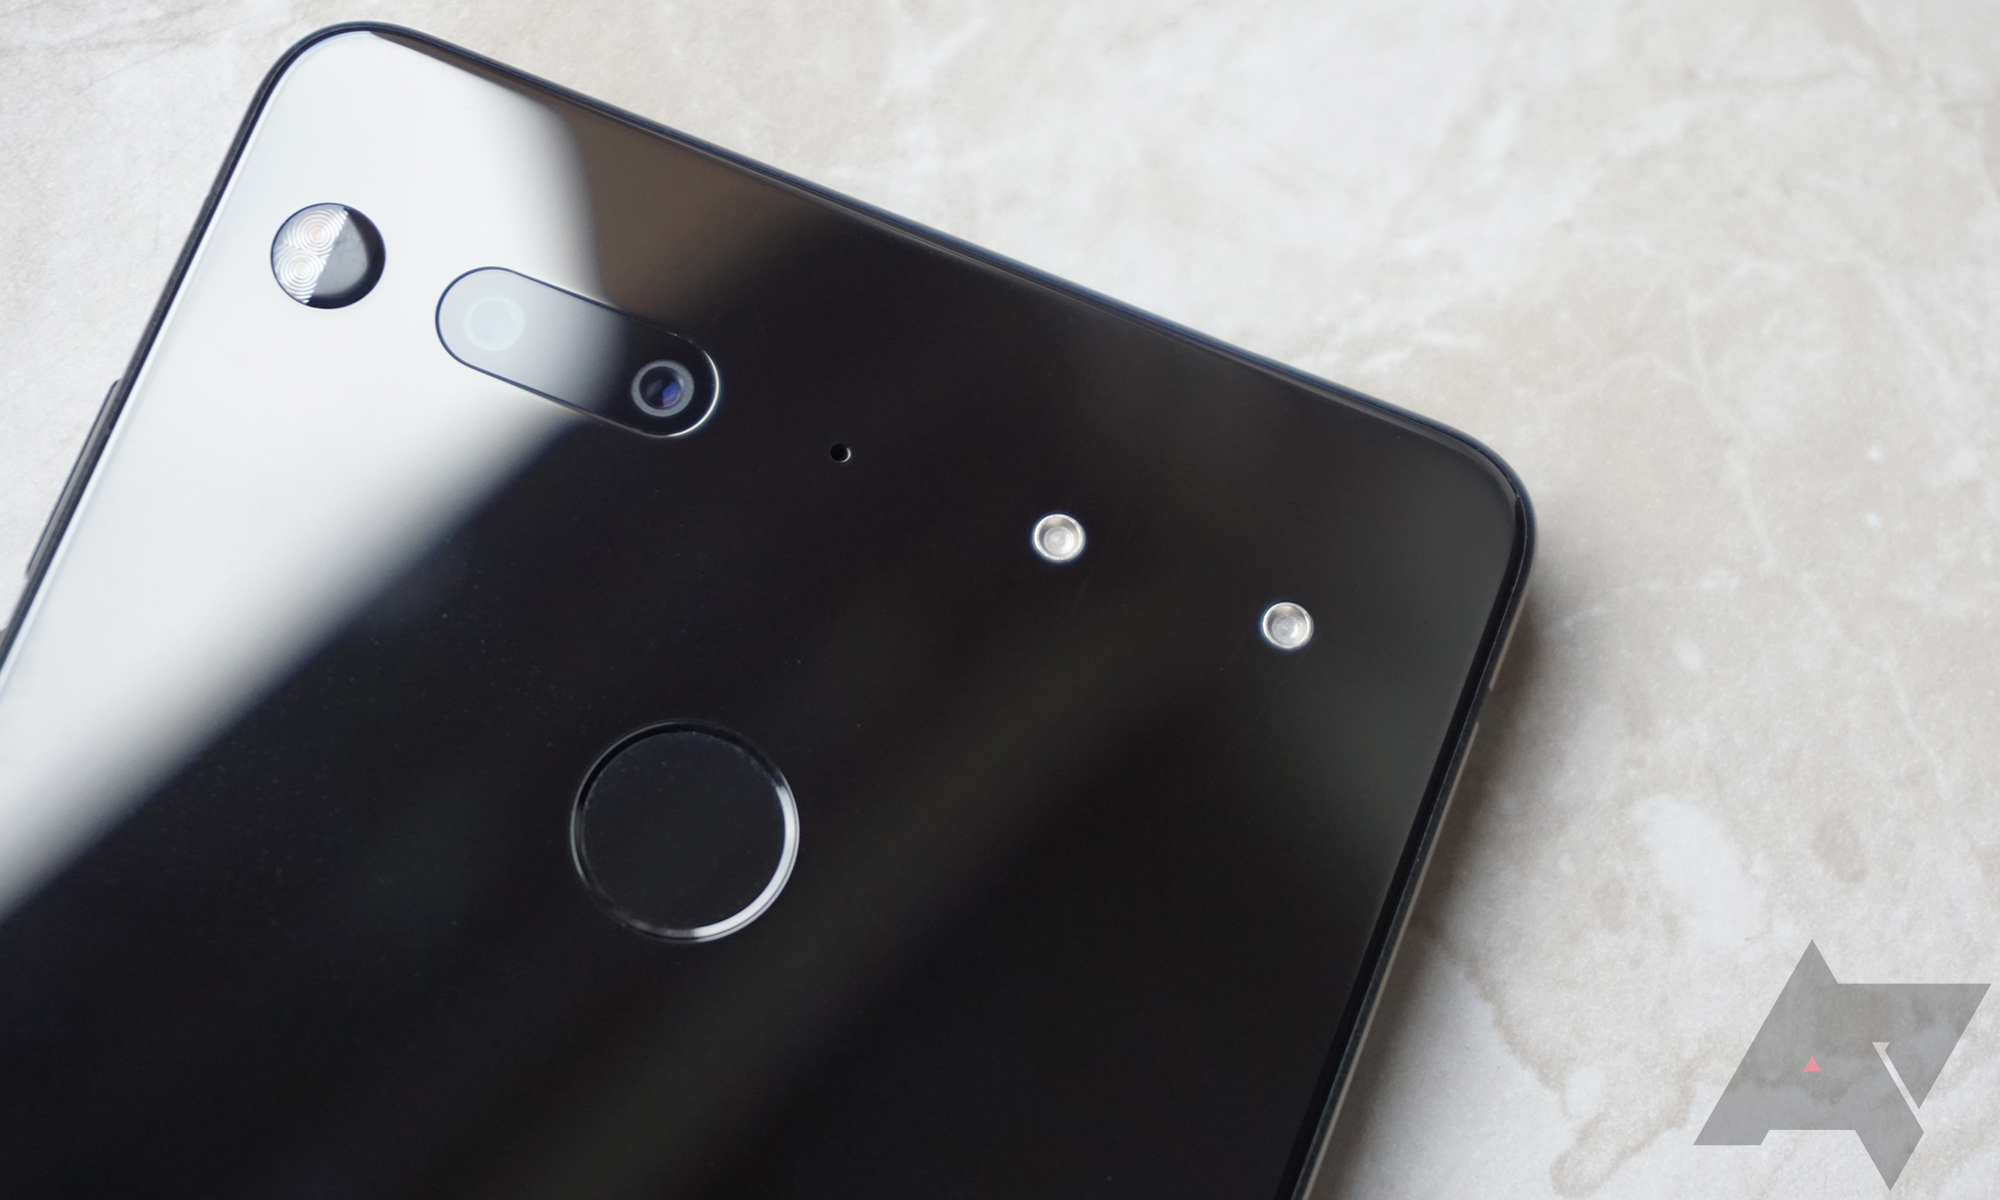 Essential announces new OTA update to improve camera